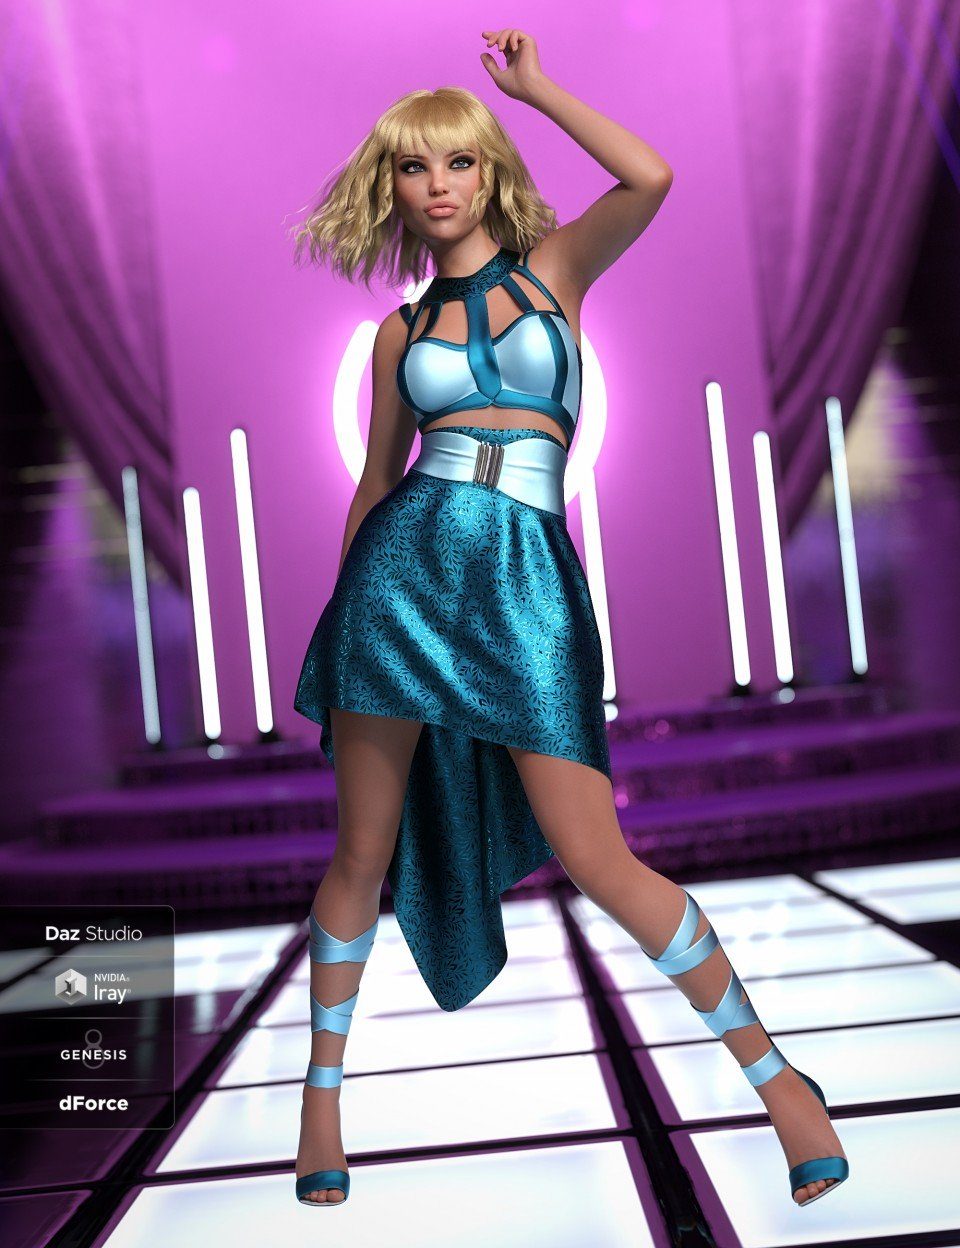 dForce Strappy High Low Outfit Textures_DAZ3D下载站